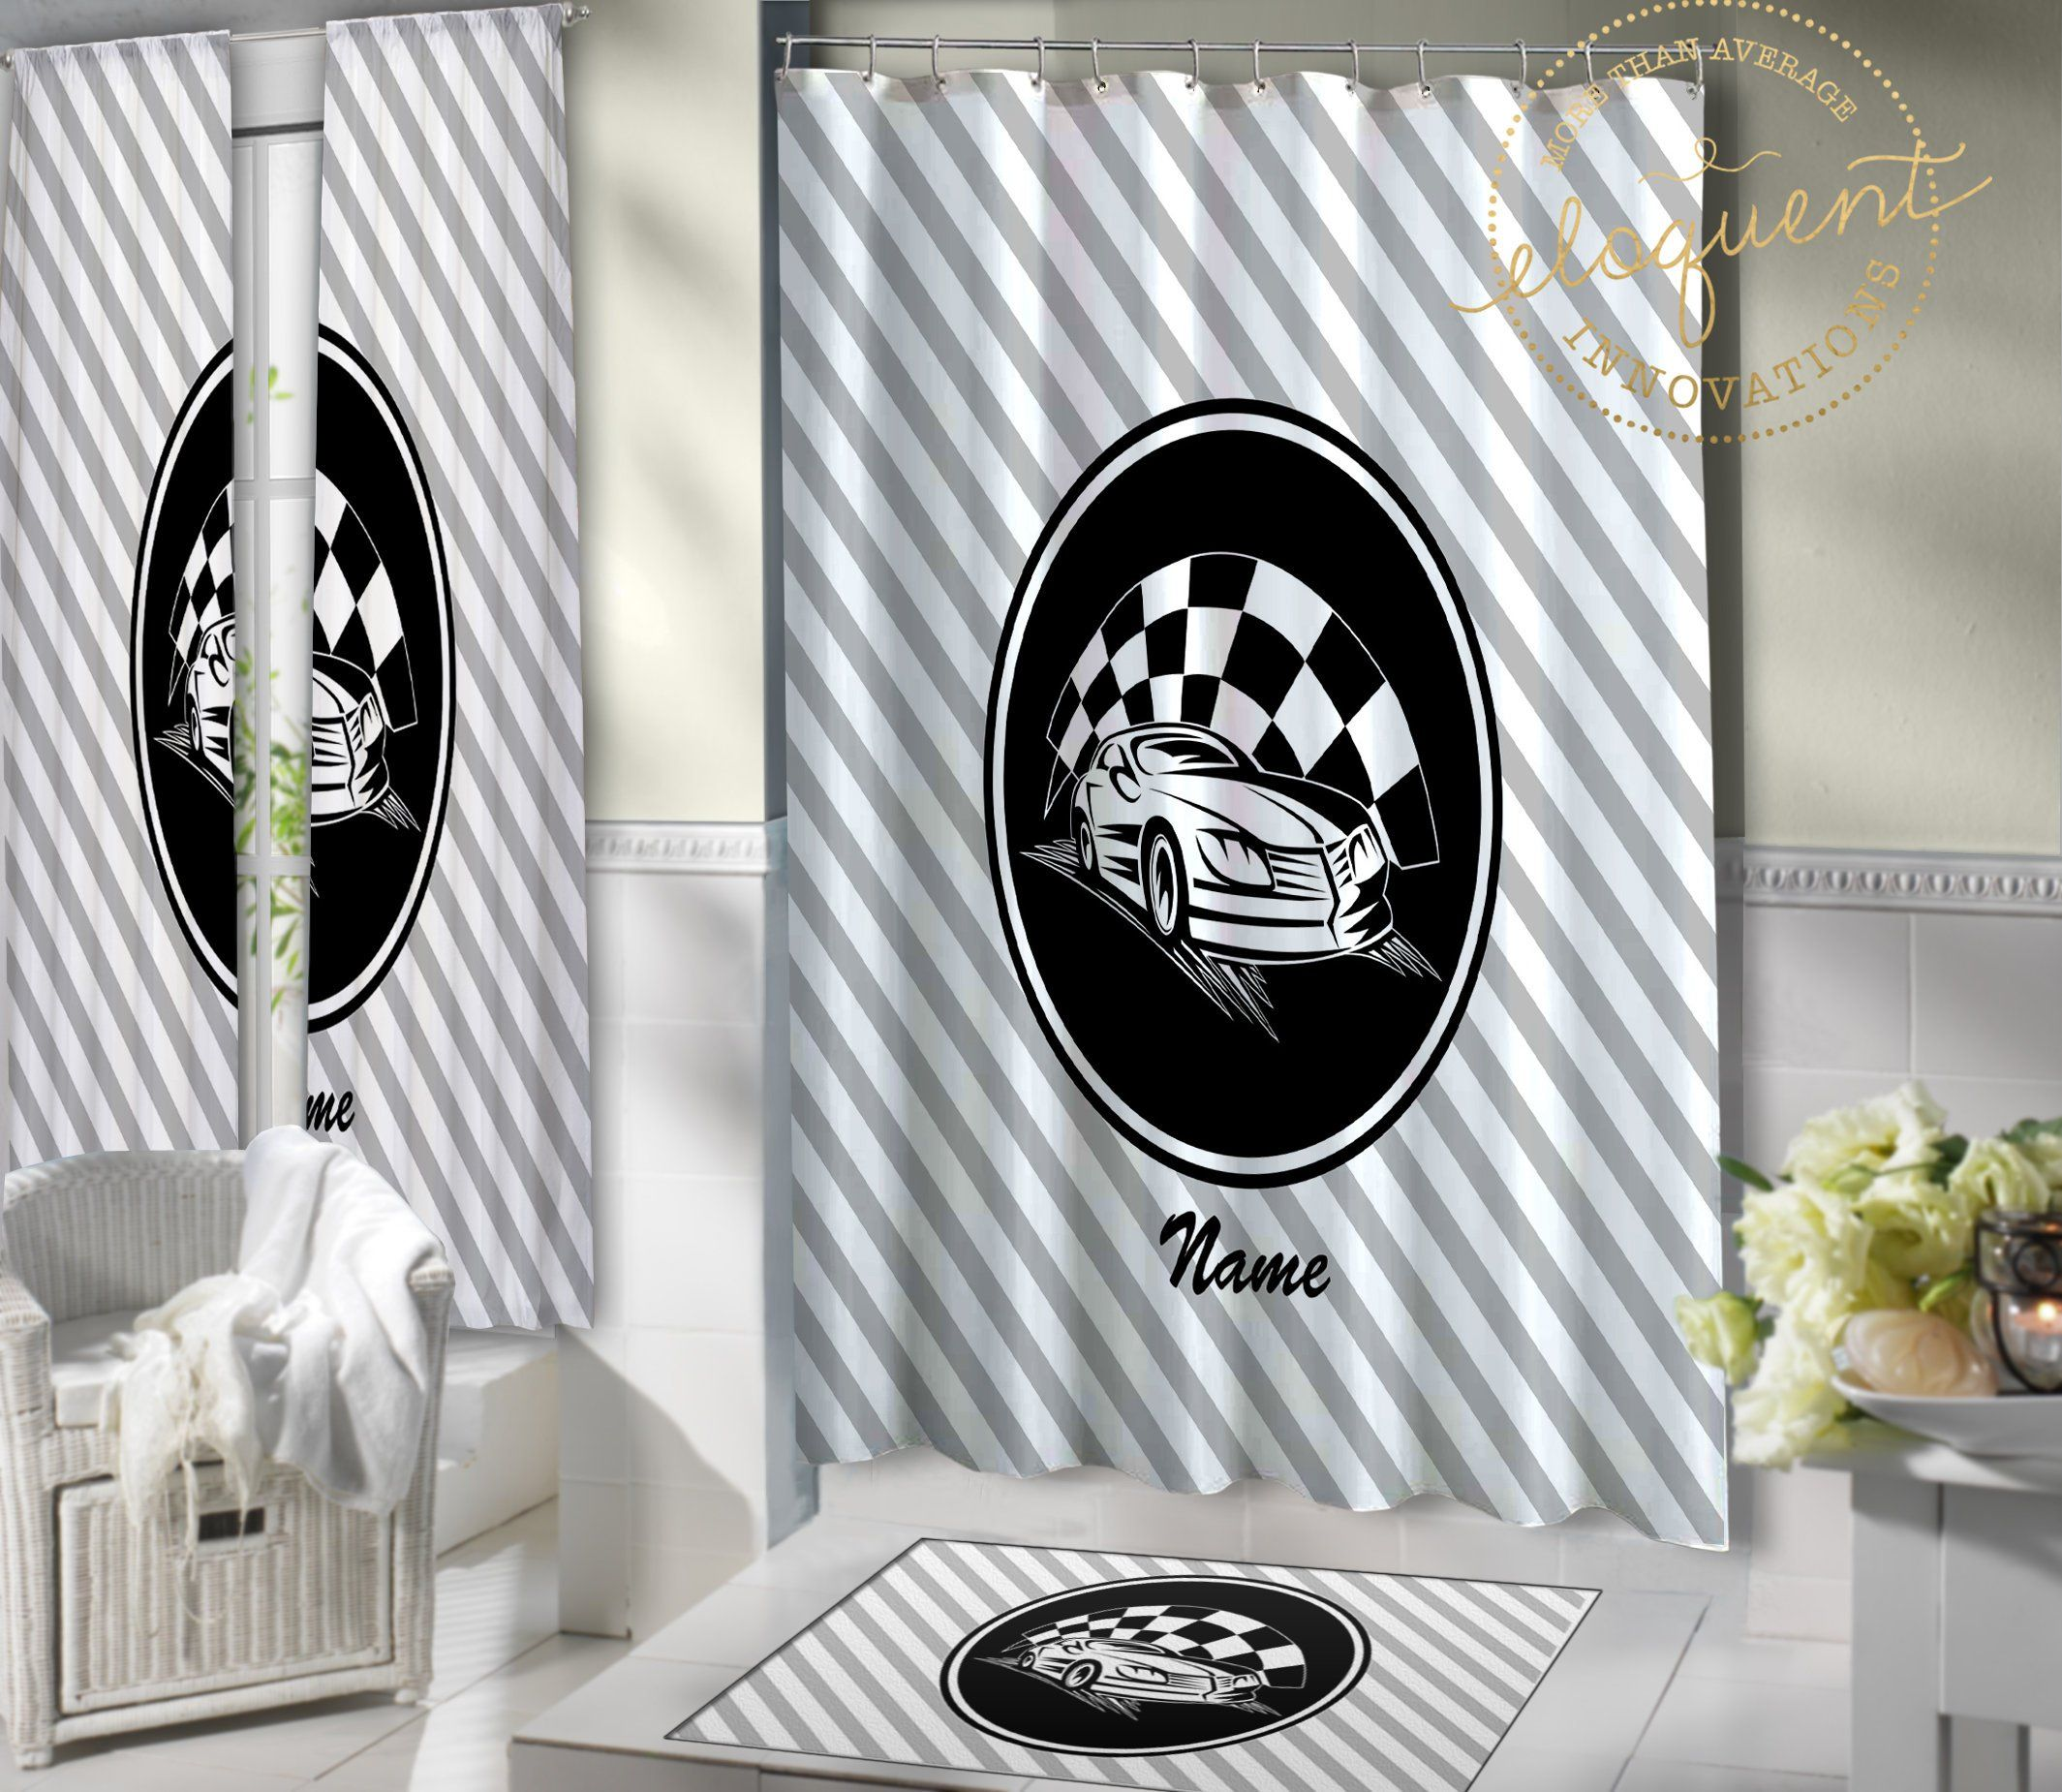 Race Car Shower Cutain Personalized With Name Car Racing Decor